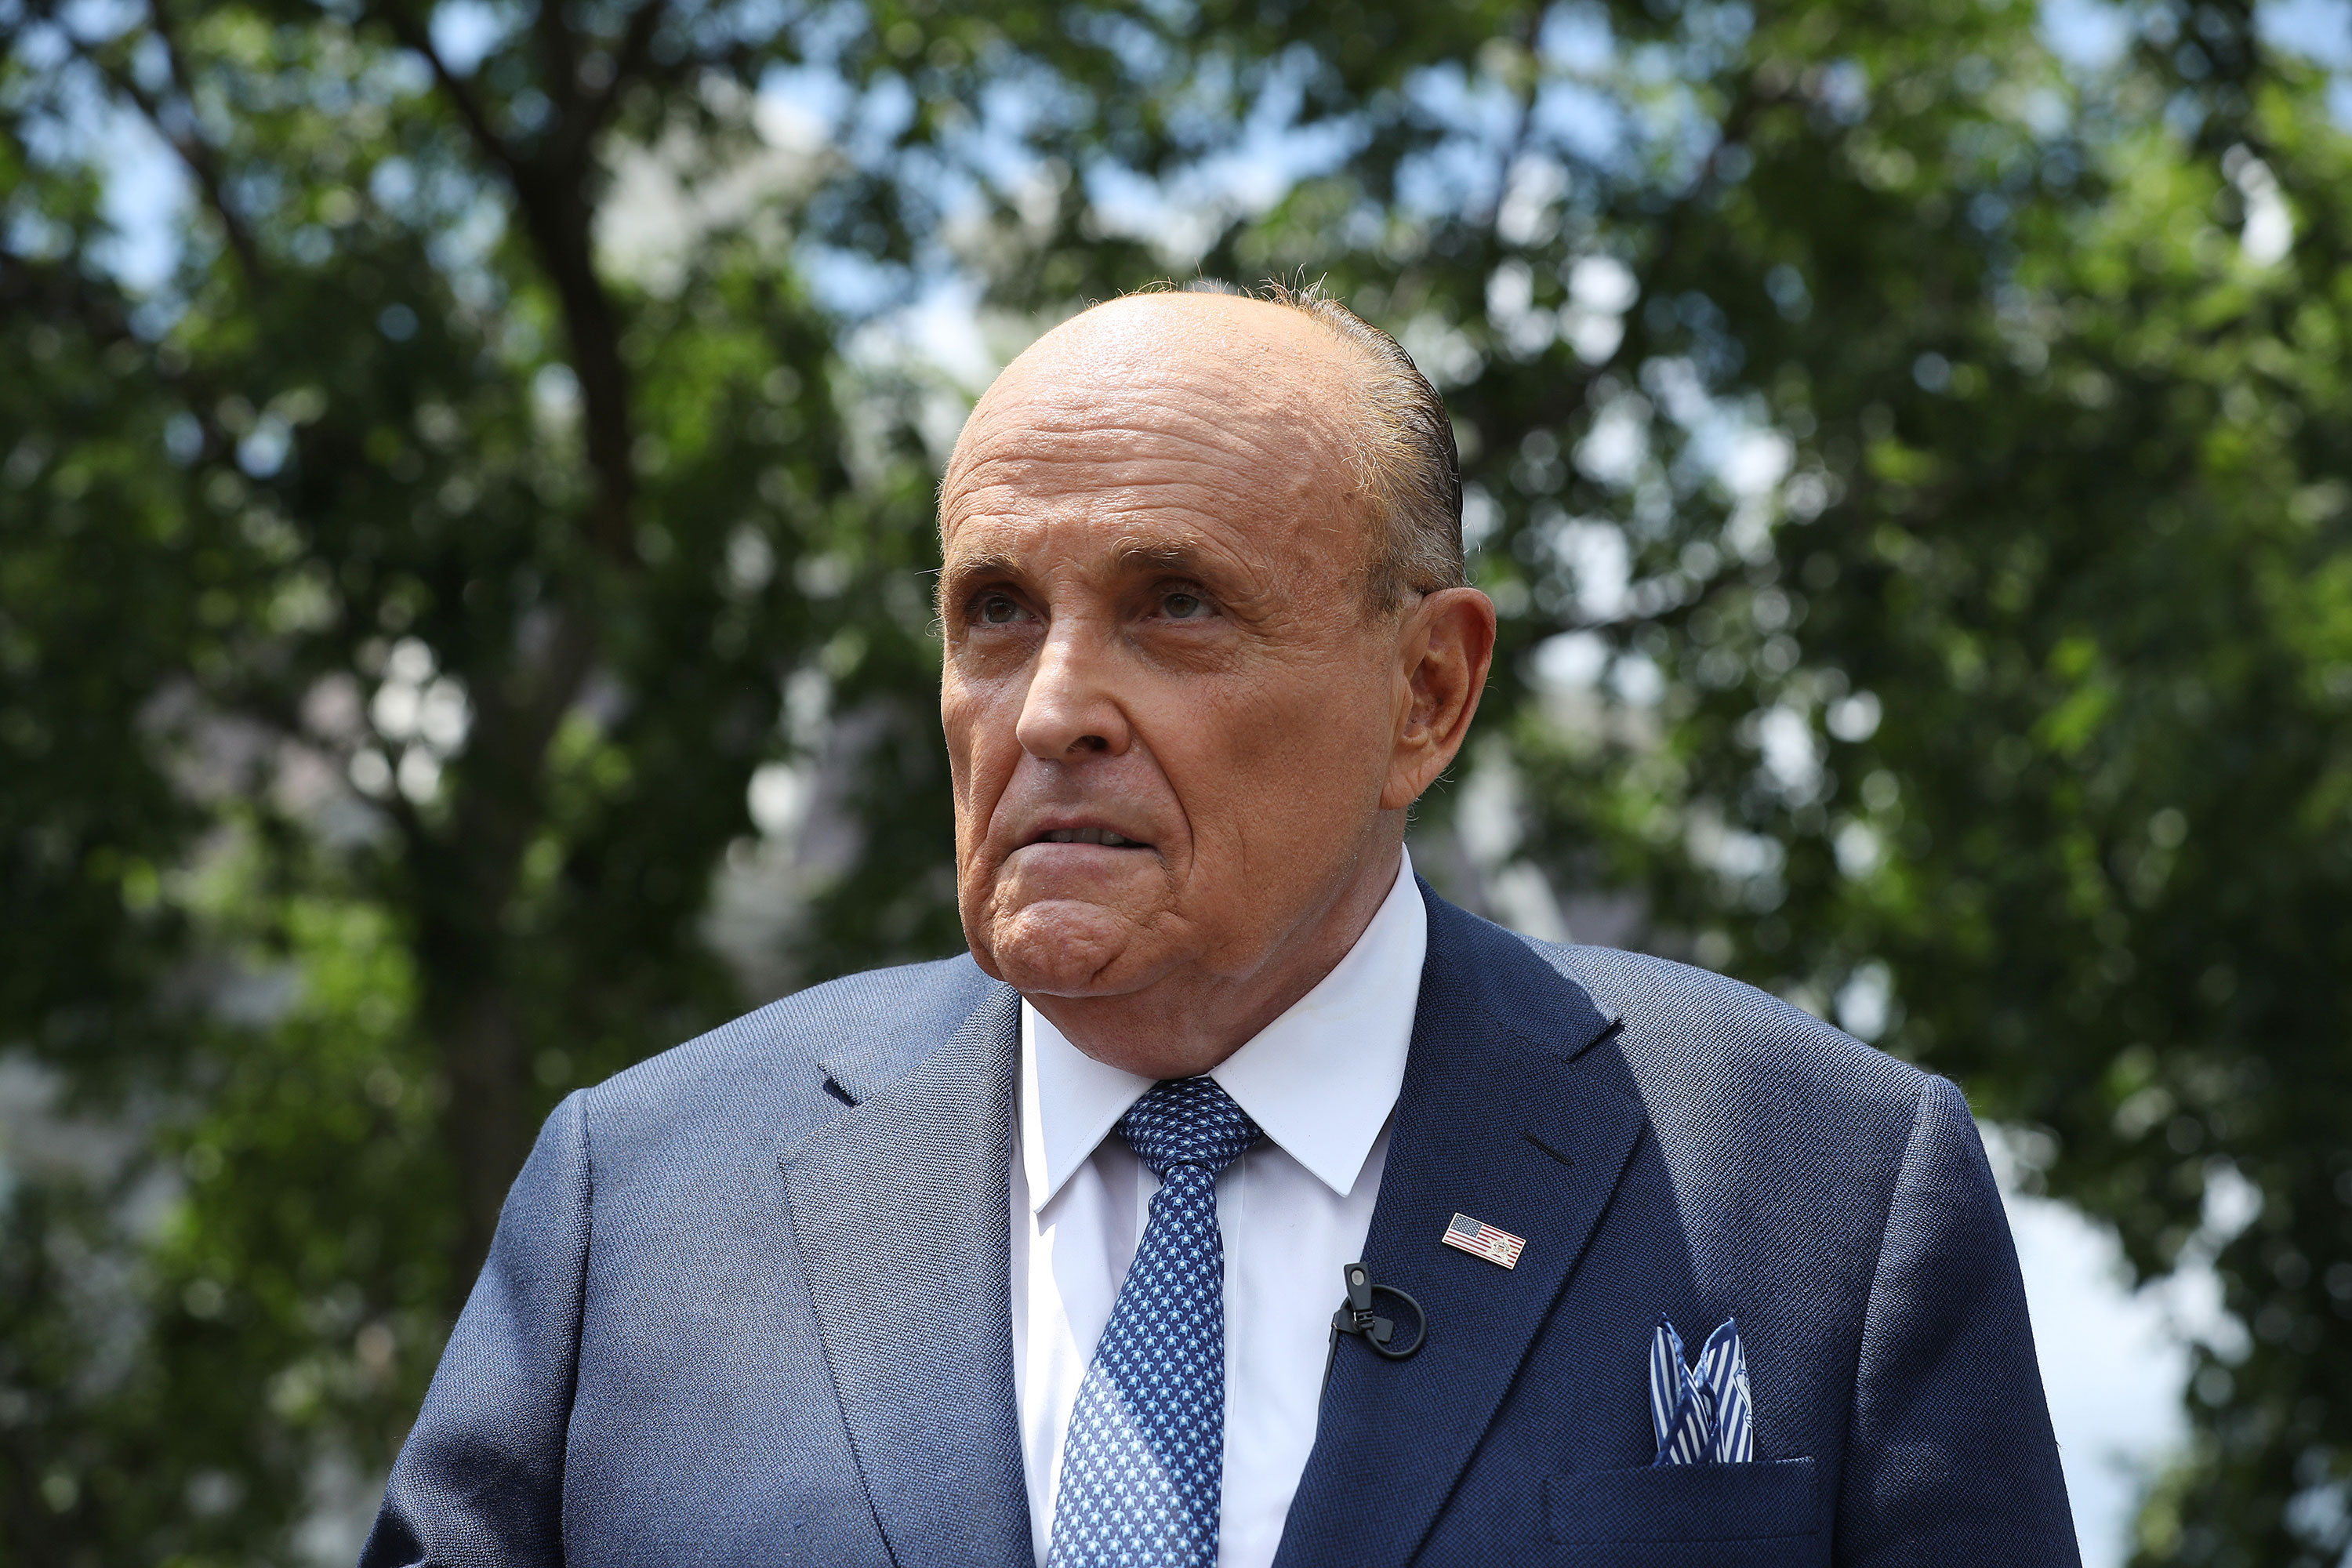 Former New York City Mayor Rudy Giuliani talks to journalists outside the White House on July 1 in Washington, DC.